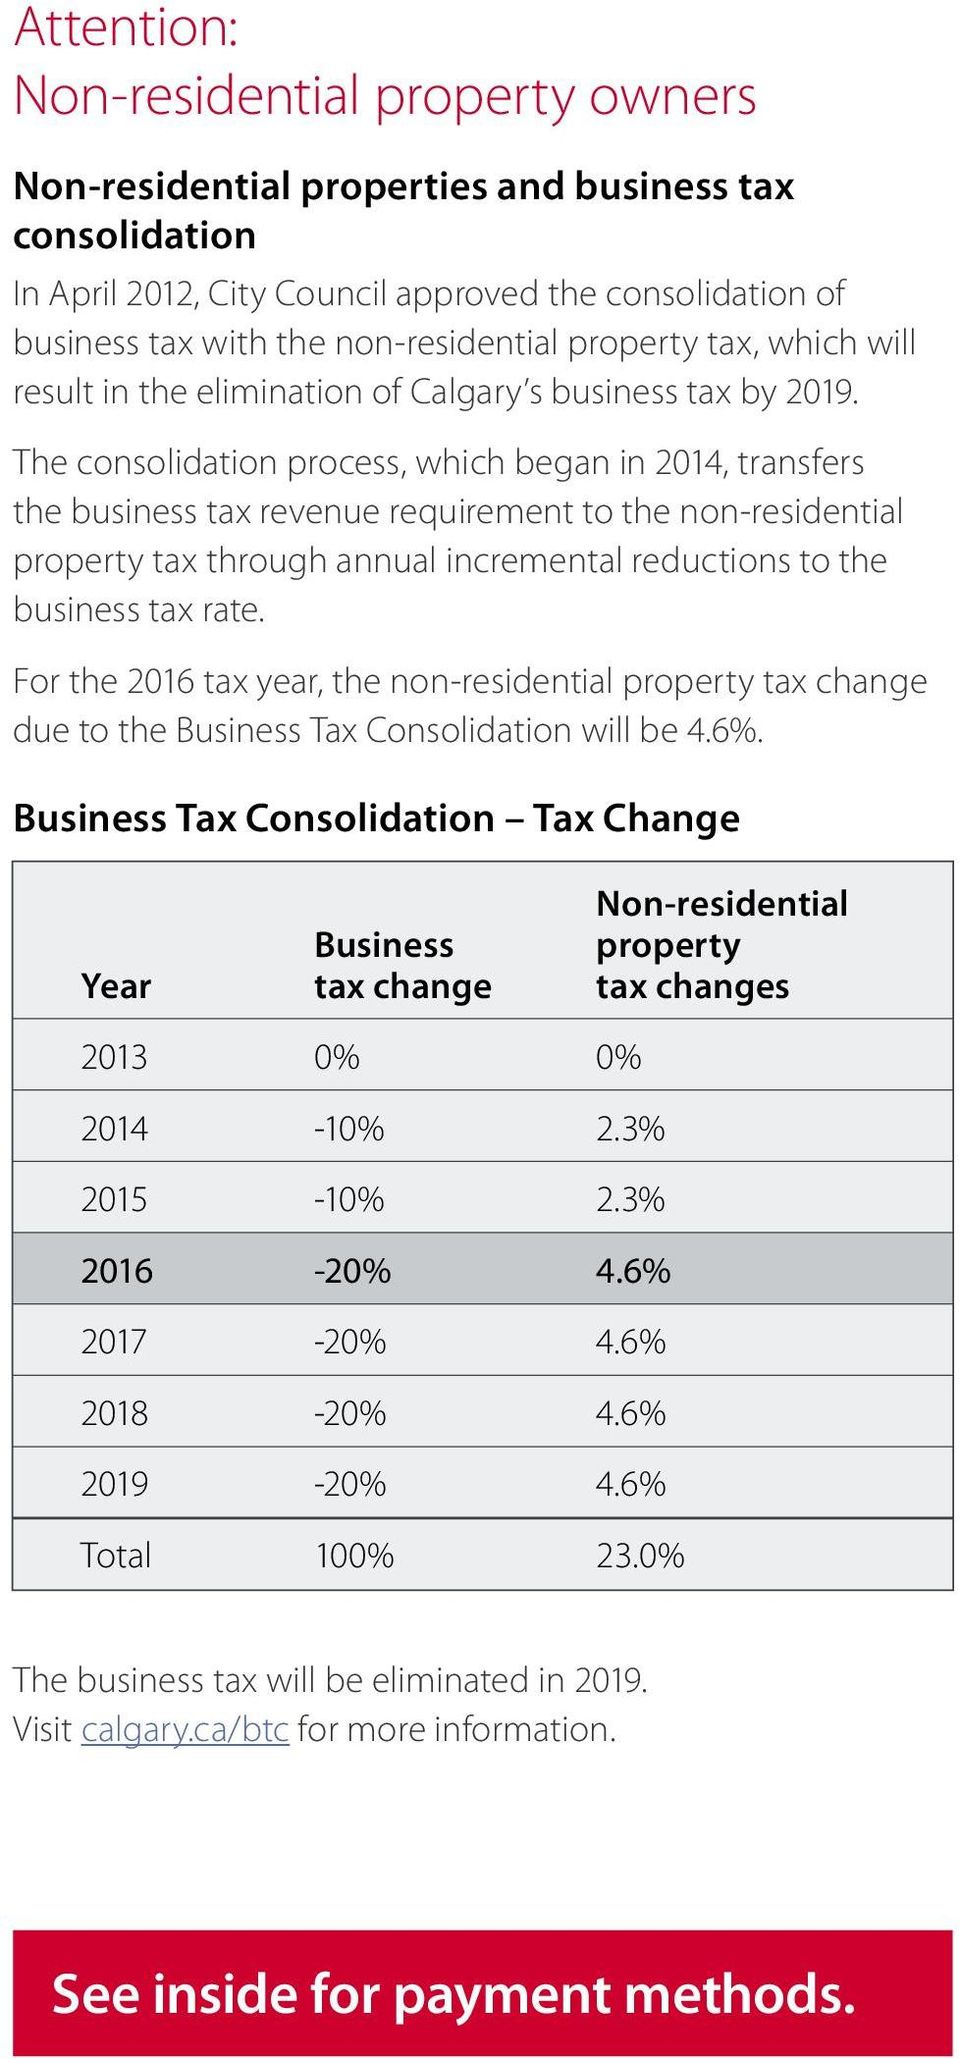 The consolidation process, which began in 2014, transfers the business tax revenue requirement to the non-residential property tax through annual incremental reductions to the business tax rate.